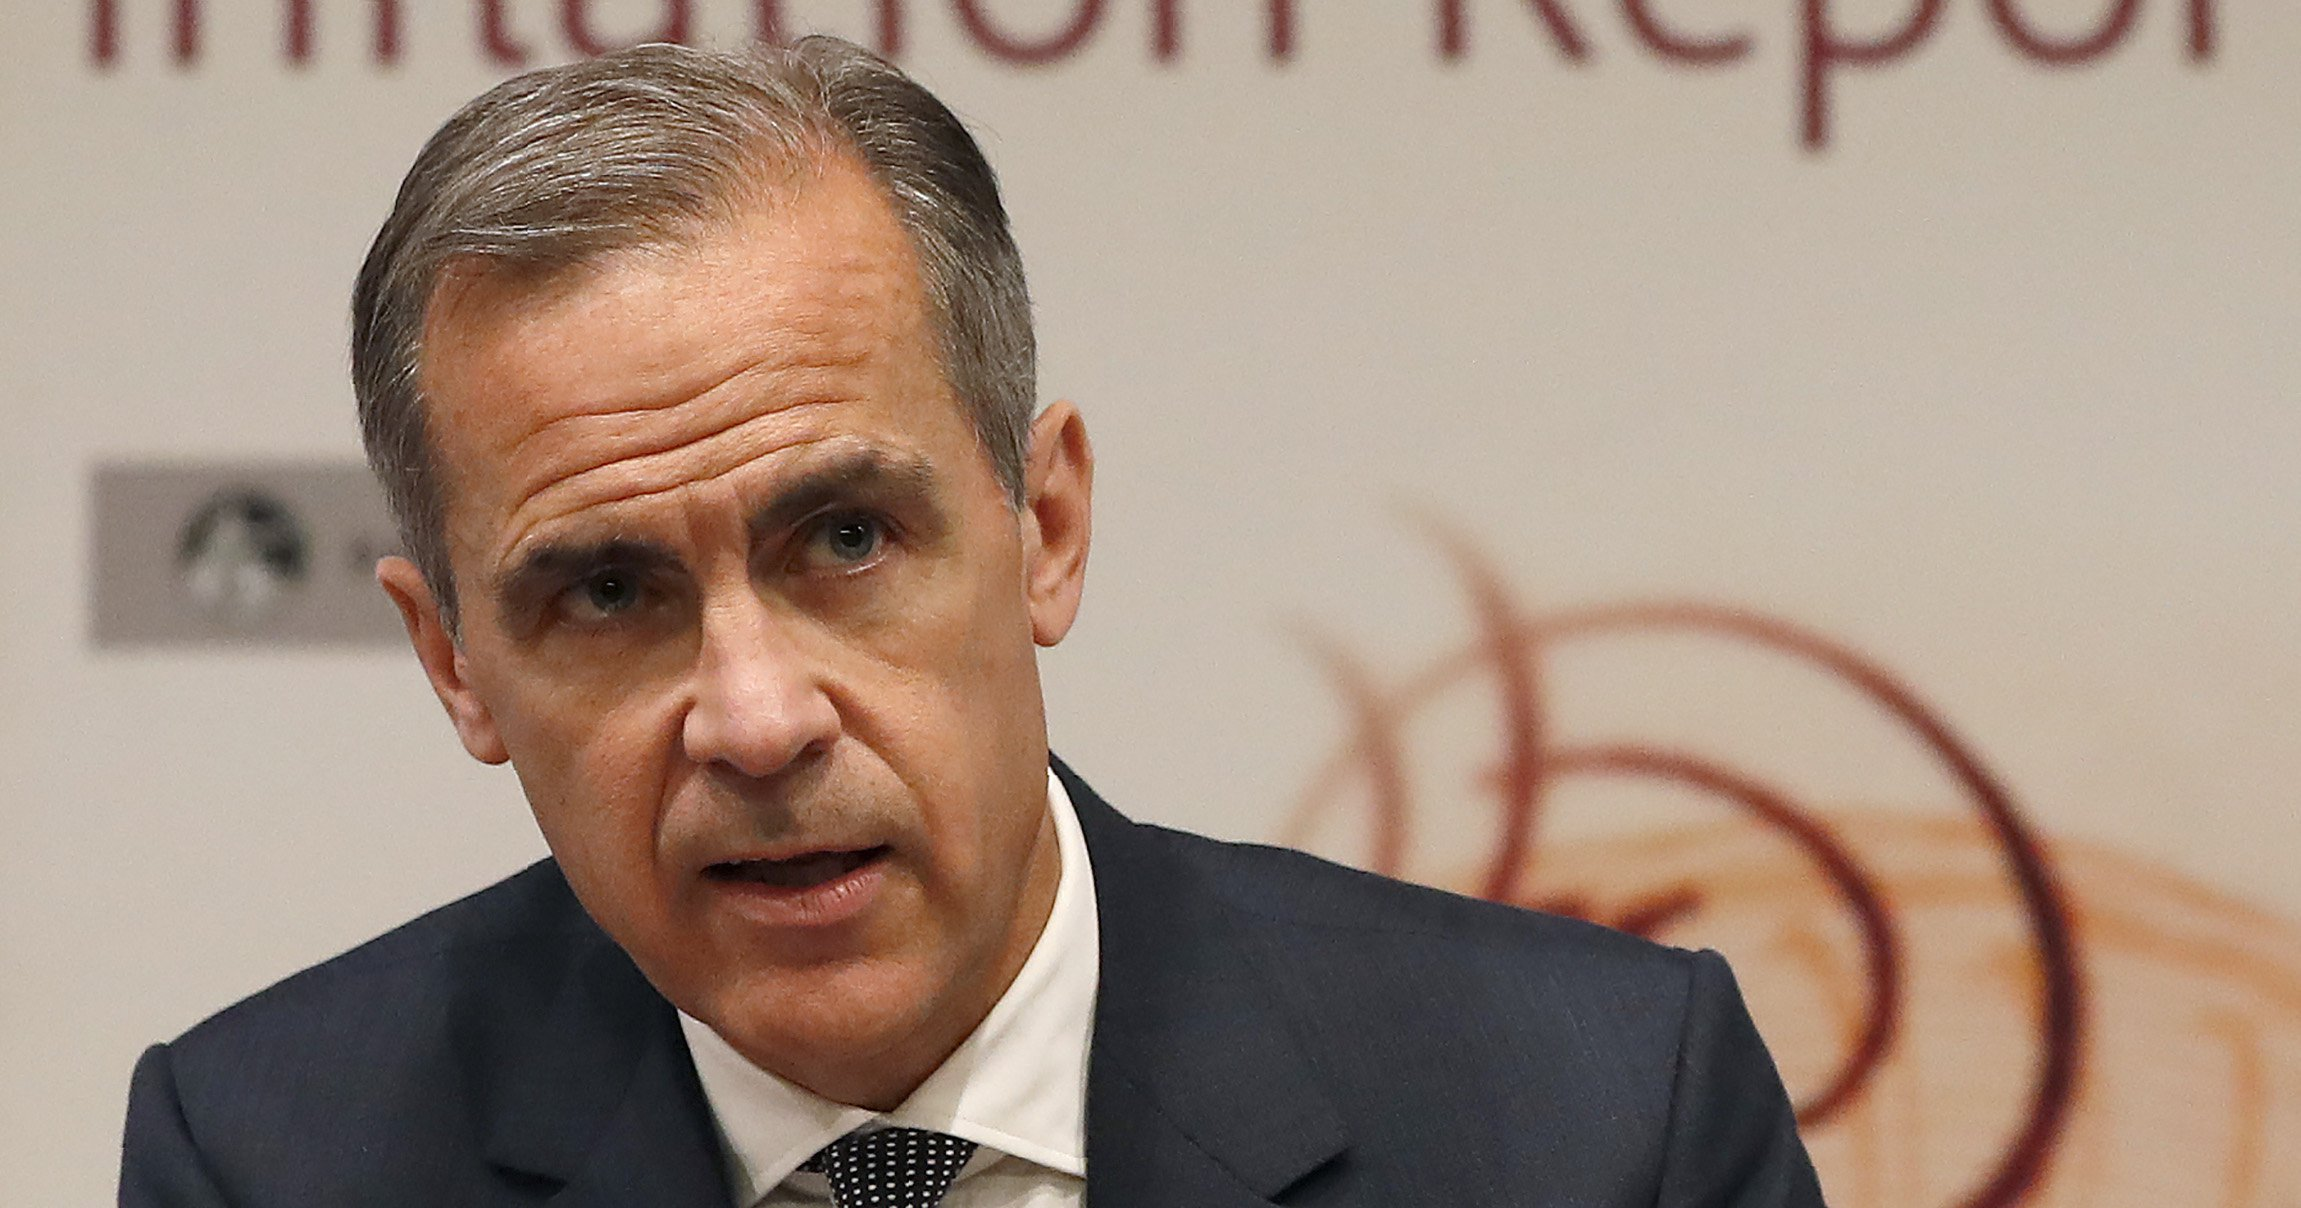 Governor of the Bank of England falls for hoax emails and reveals awkward secrets